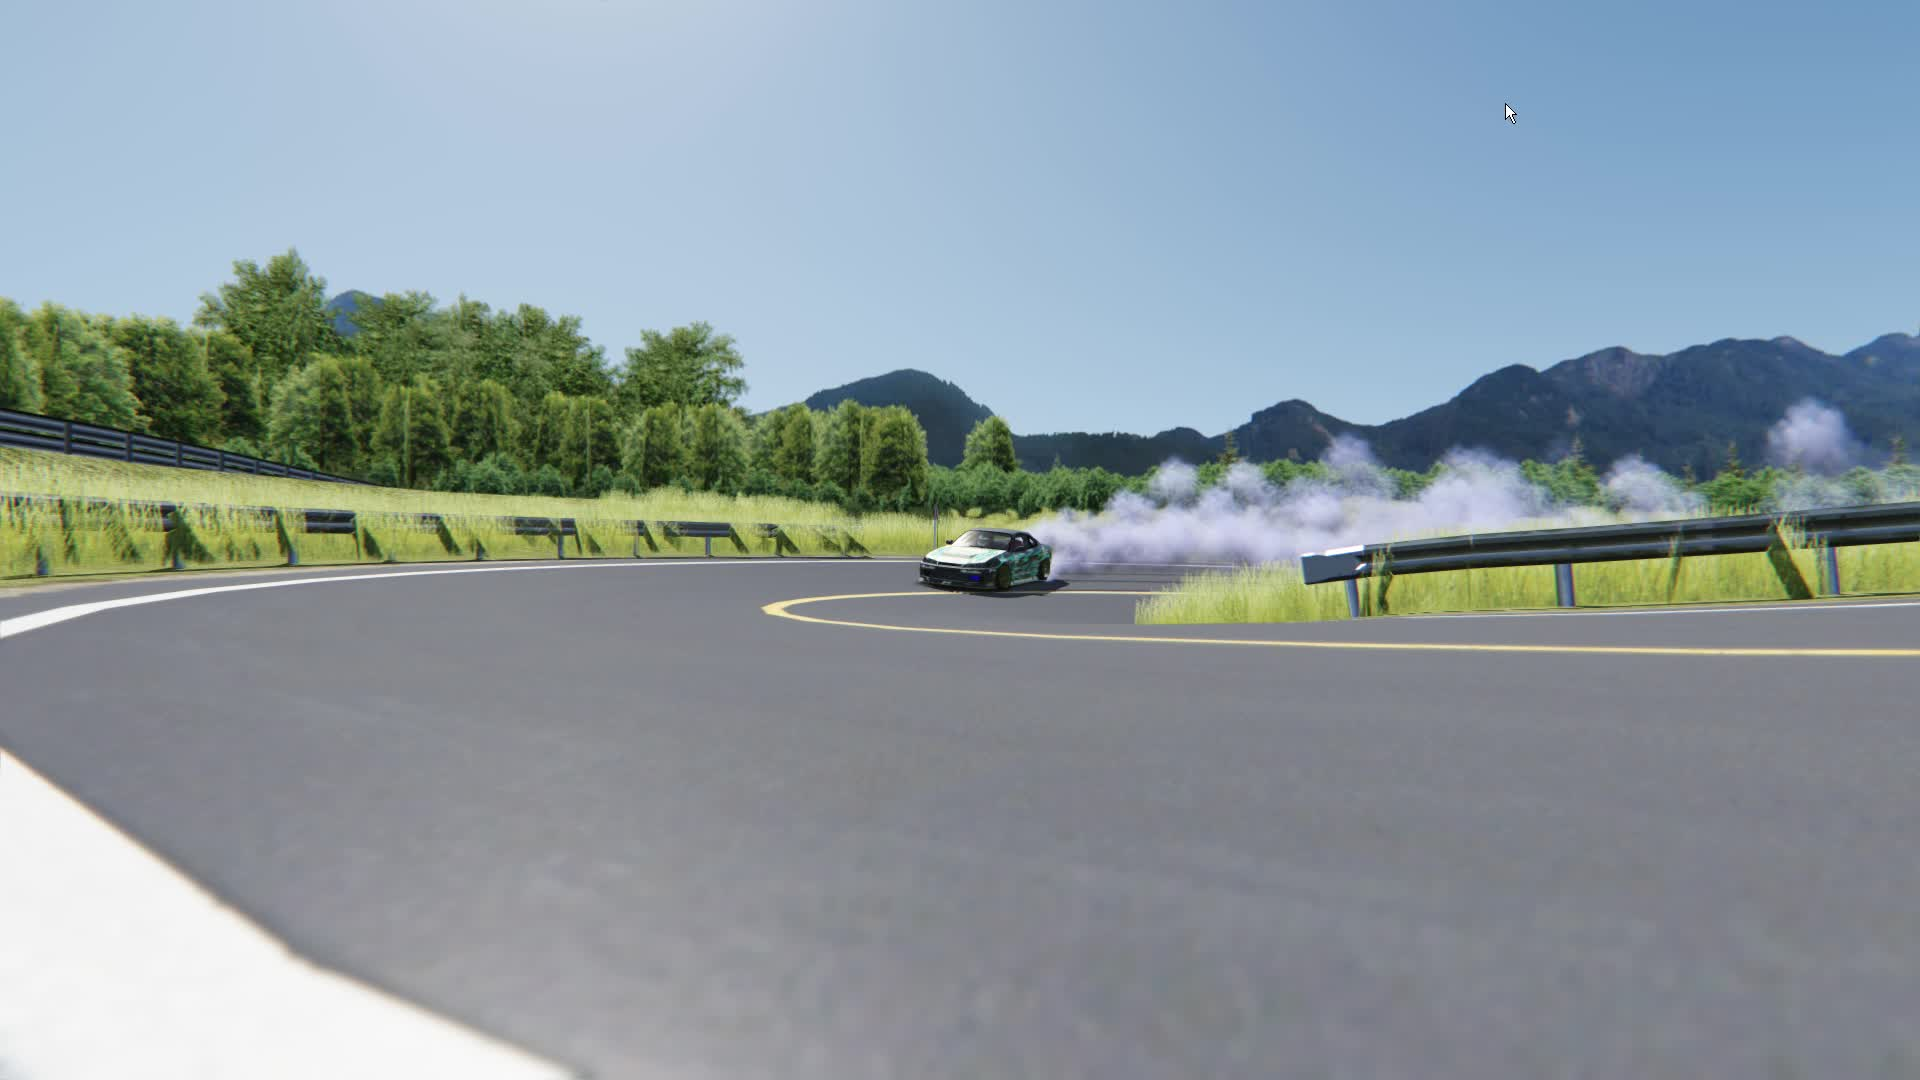 Assetto Corsa Mods Gifs Search | Search & Share on Homdor